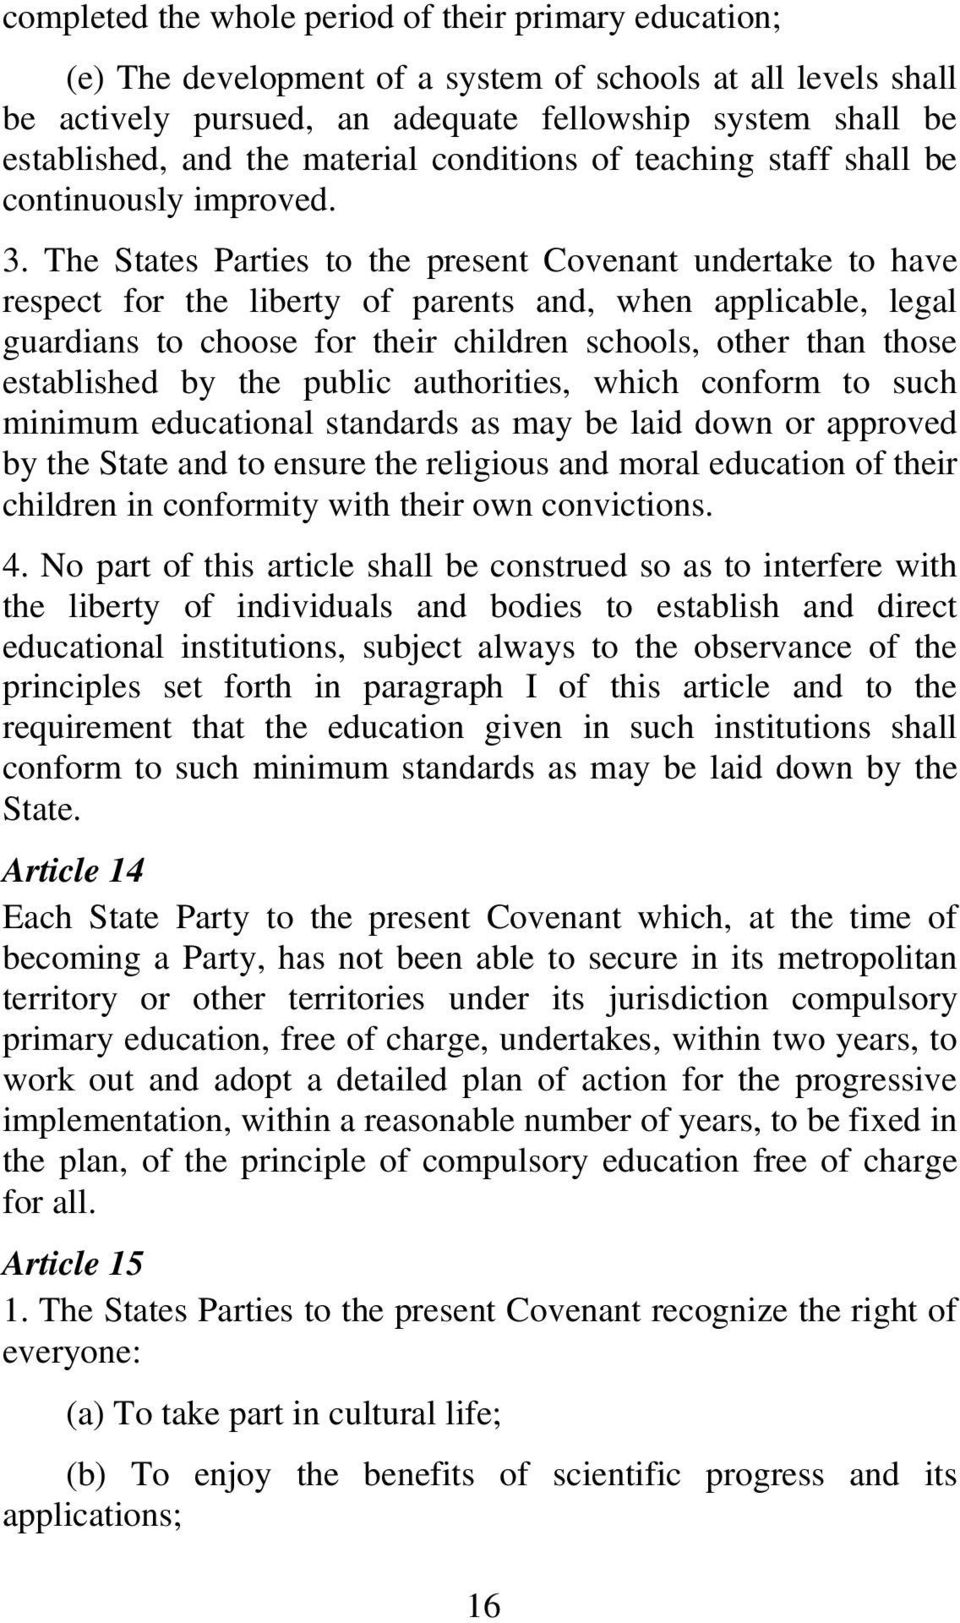 The States Parties to the present Covenant undertake to have respect for the liberty of parents and, when applicable, legal guardians to choose for their children schools, other than those